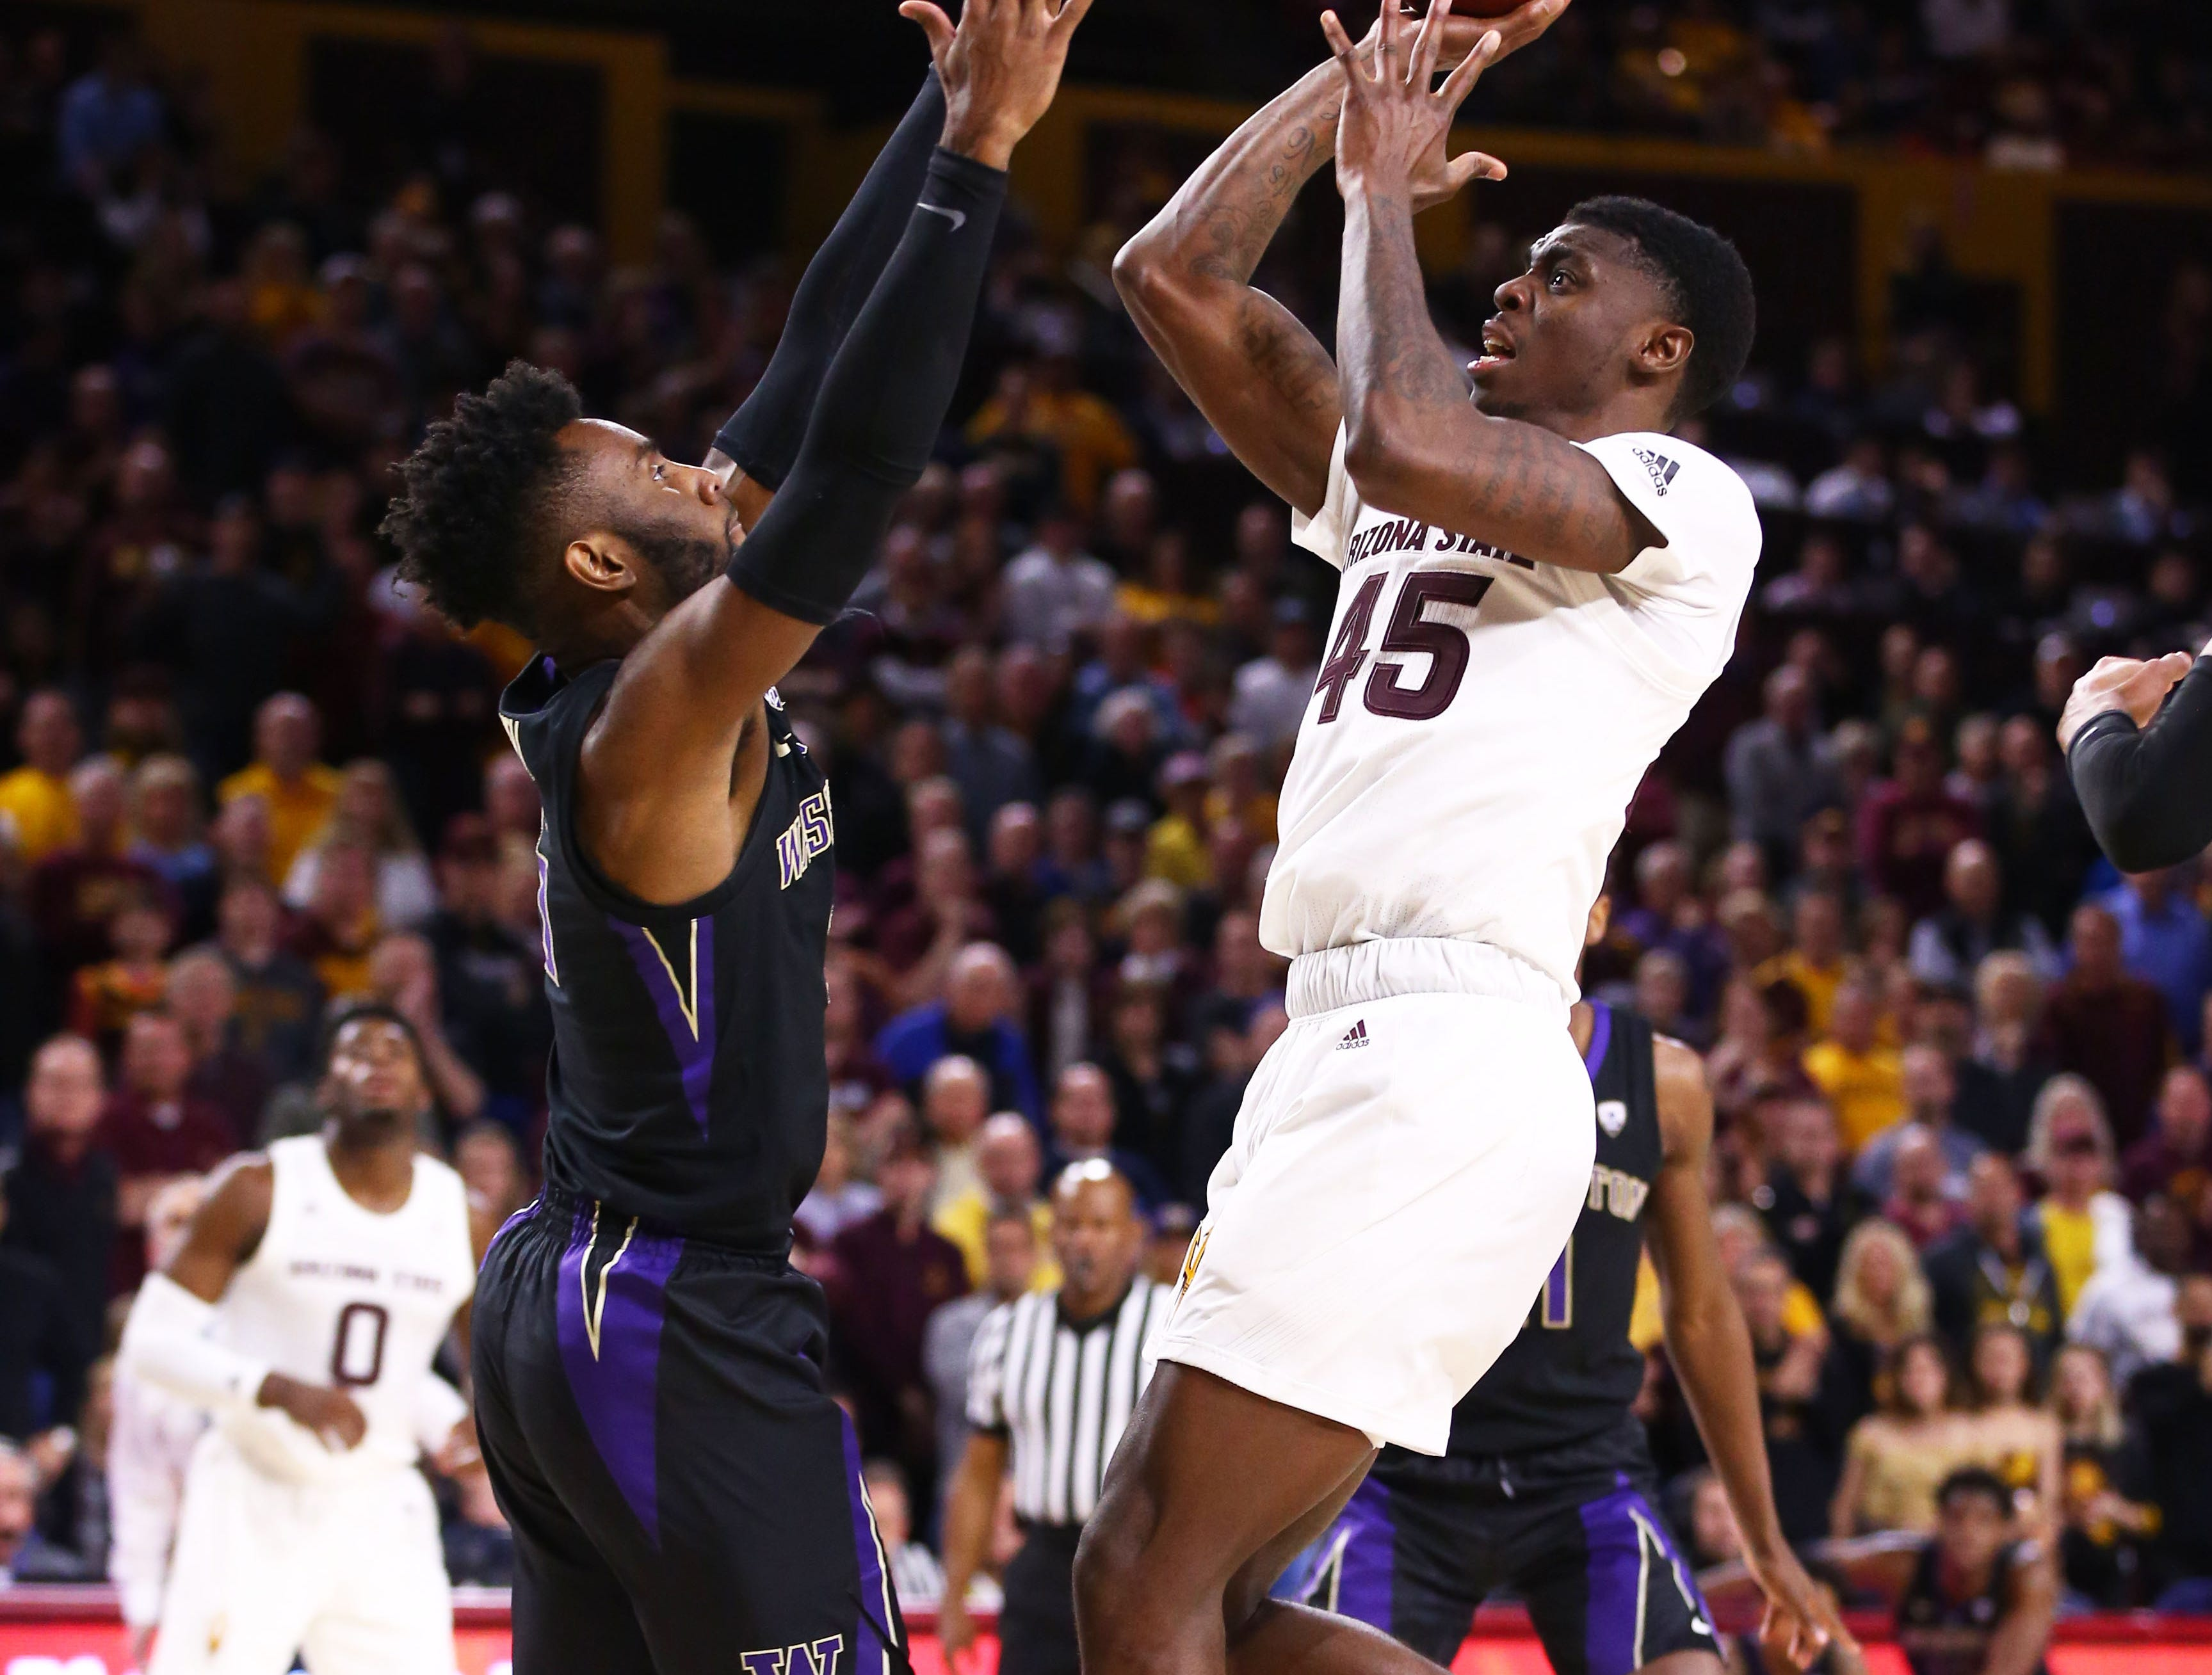 Arizona State Sun Devils forward Zylan Cheatham shoots over Washington Huskies guard Jaylen Nowell in the second half on Feb. 9 at Wells Fargo Arena in Tempe.